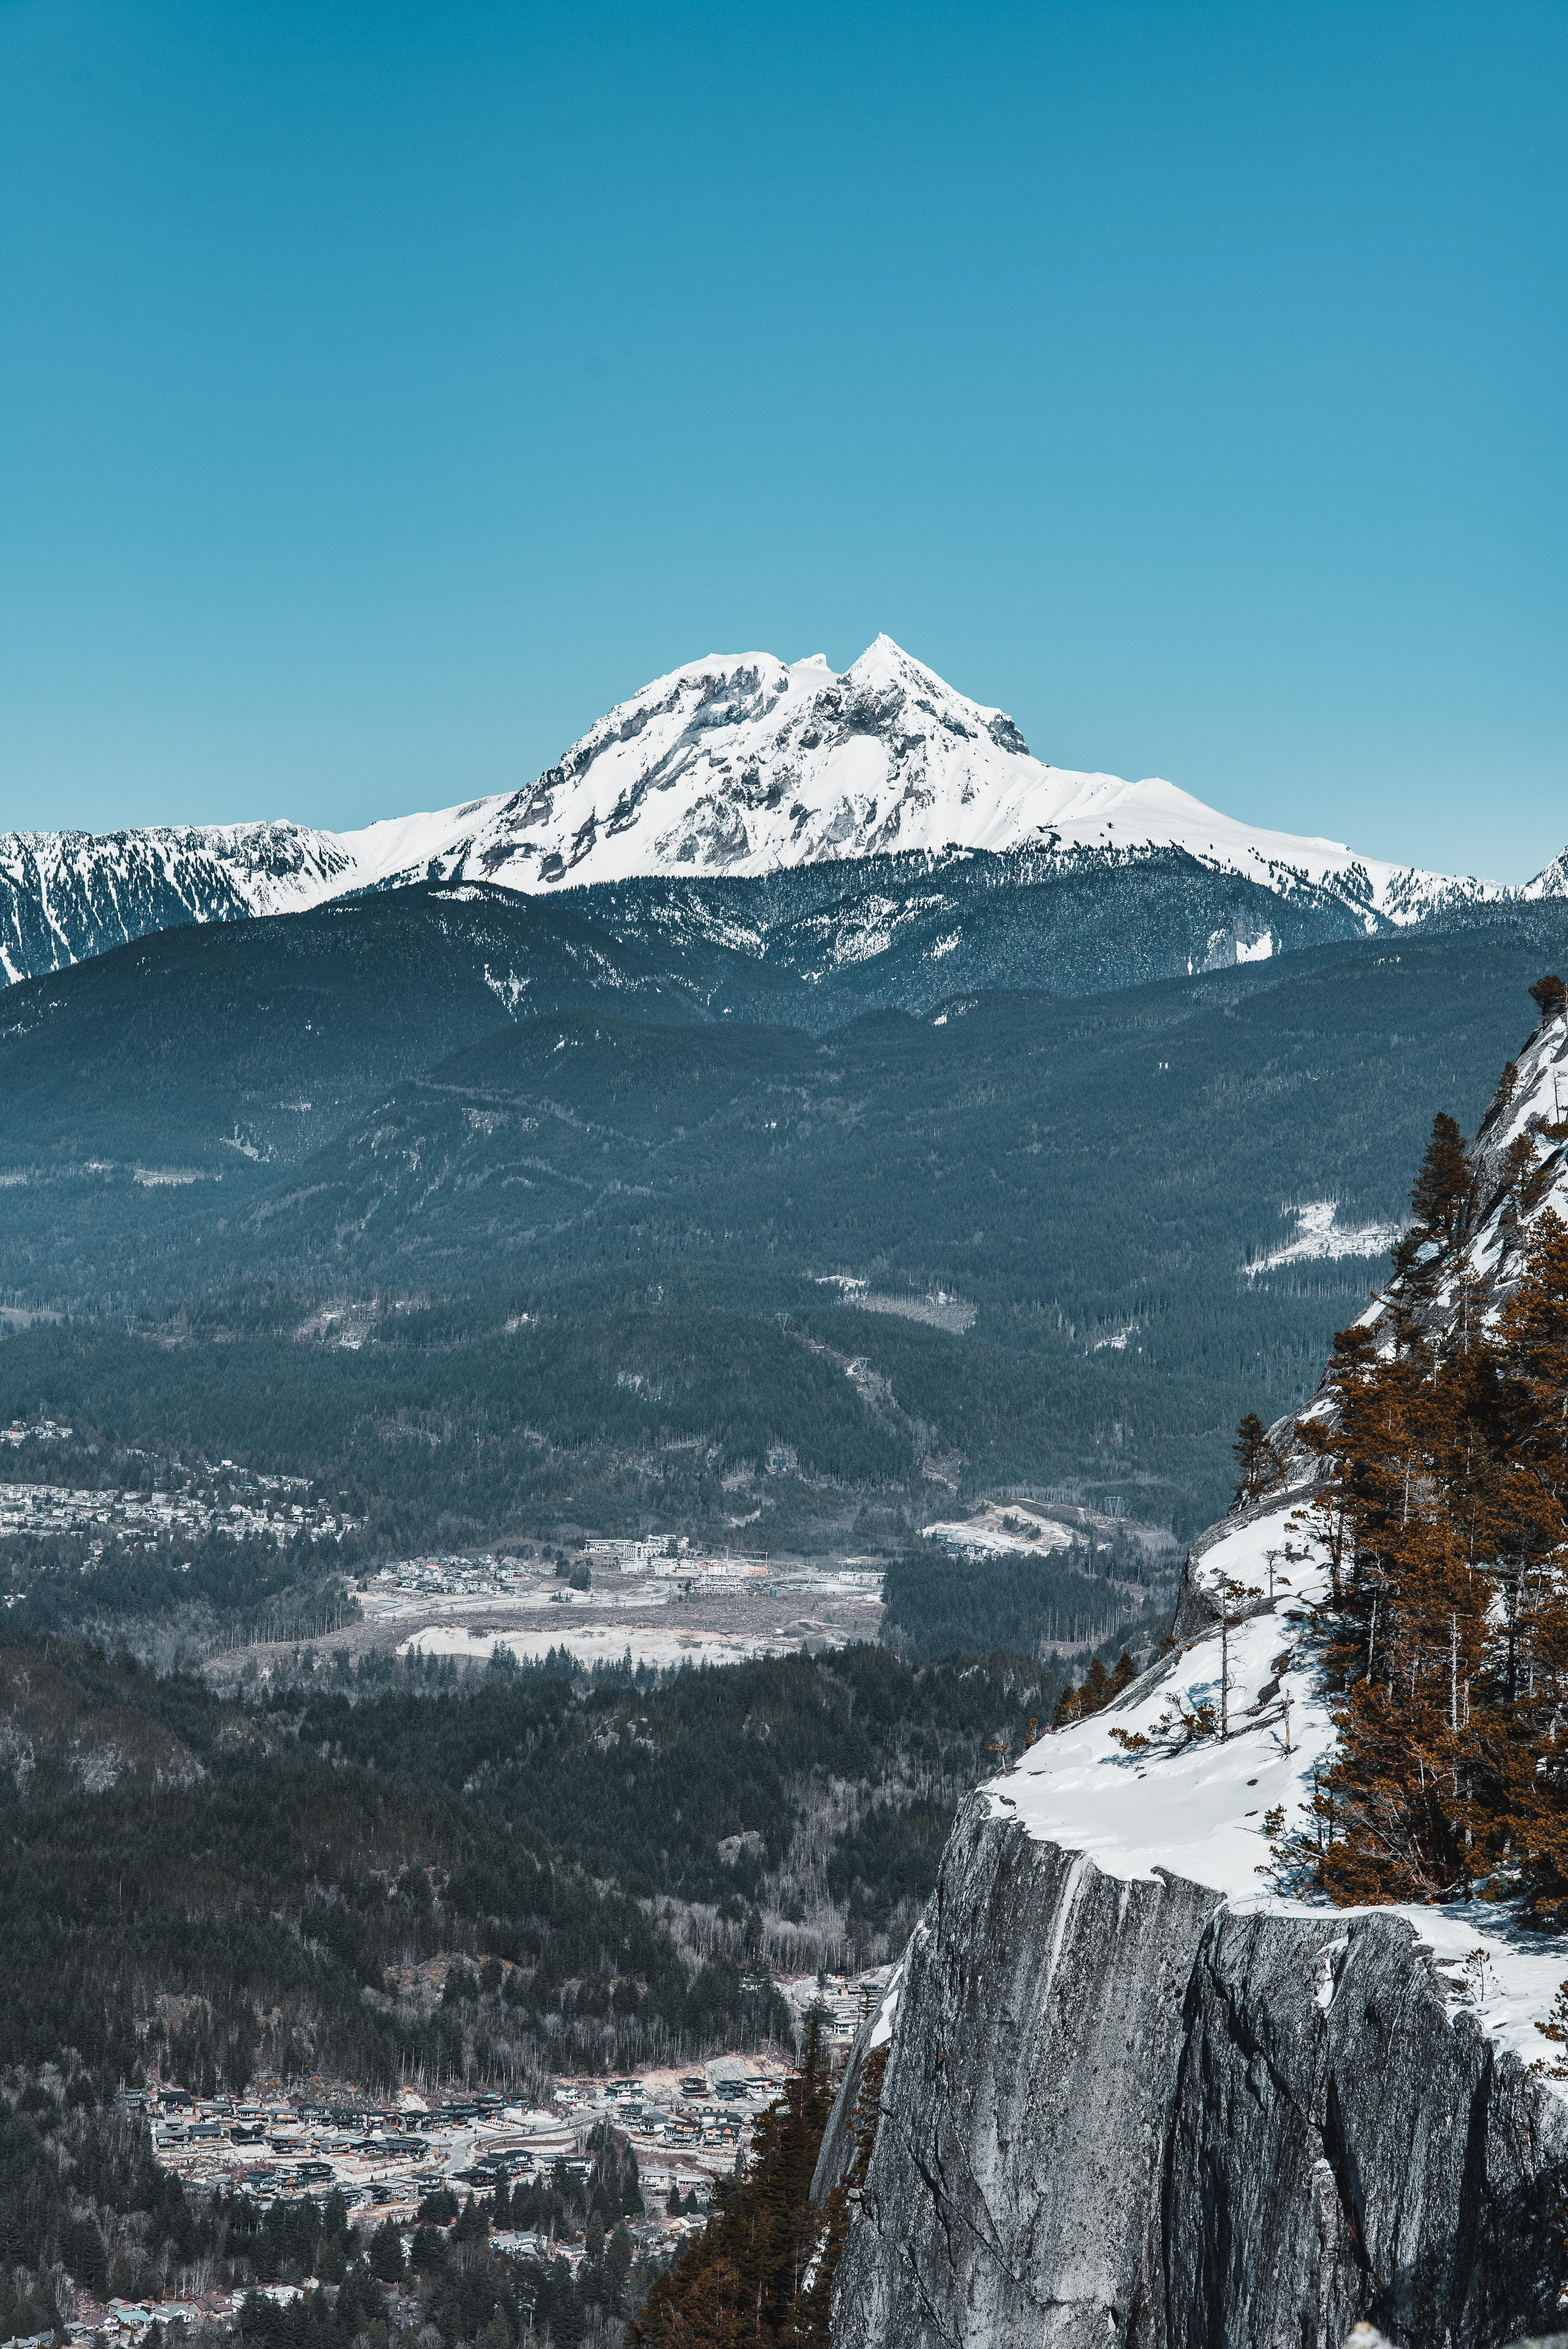 icy mountain scenry